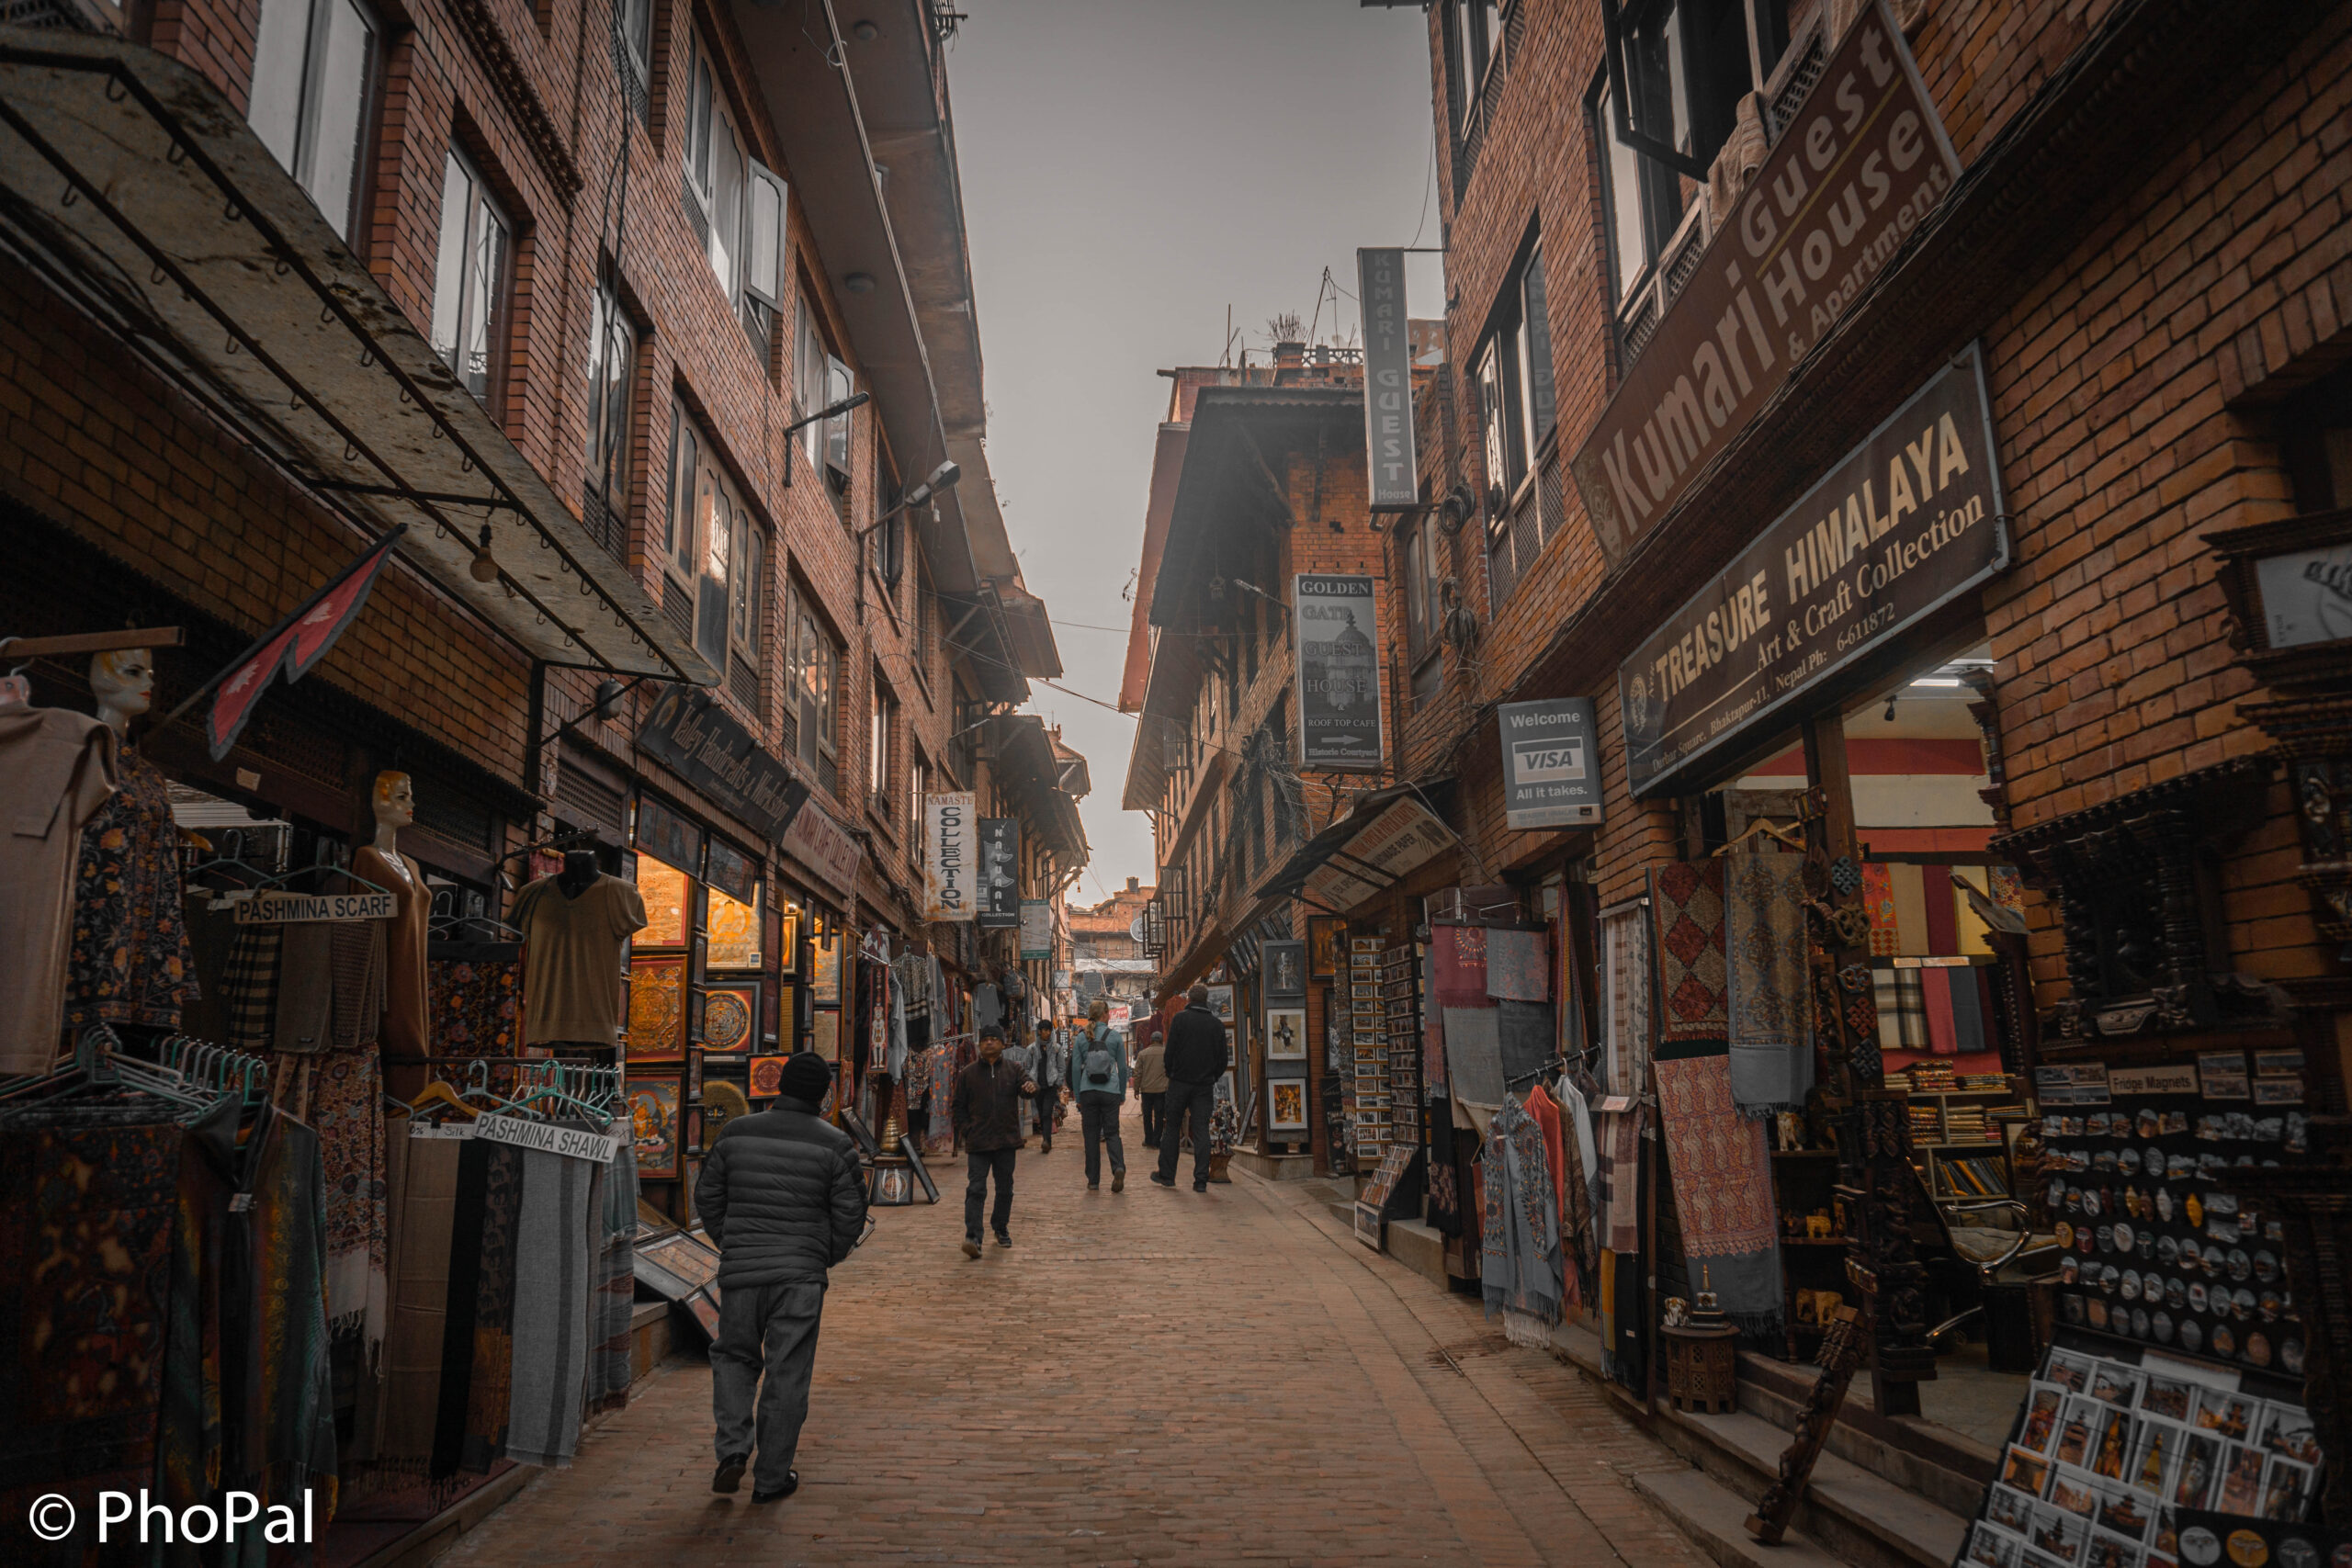 Top 10 places to visit in Bhaktapur image